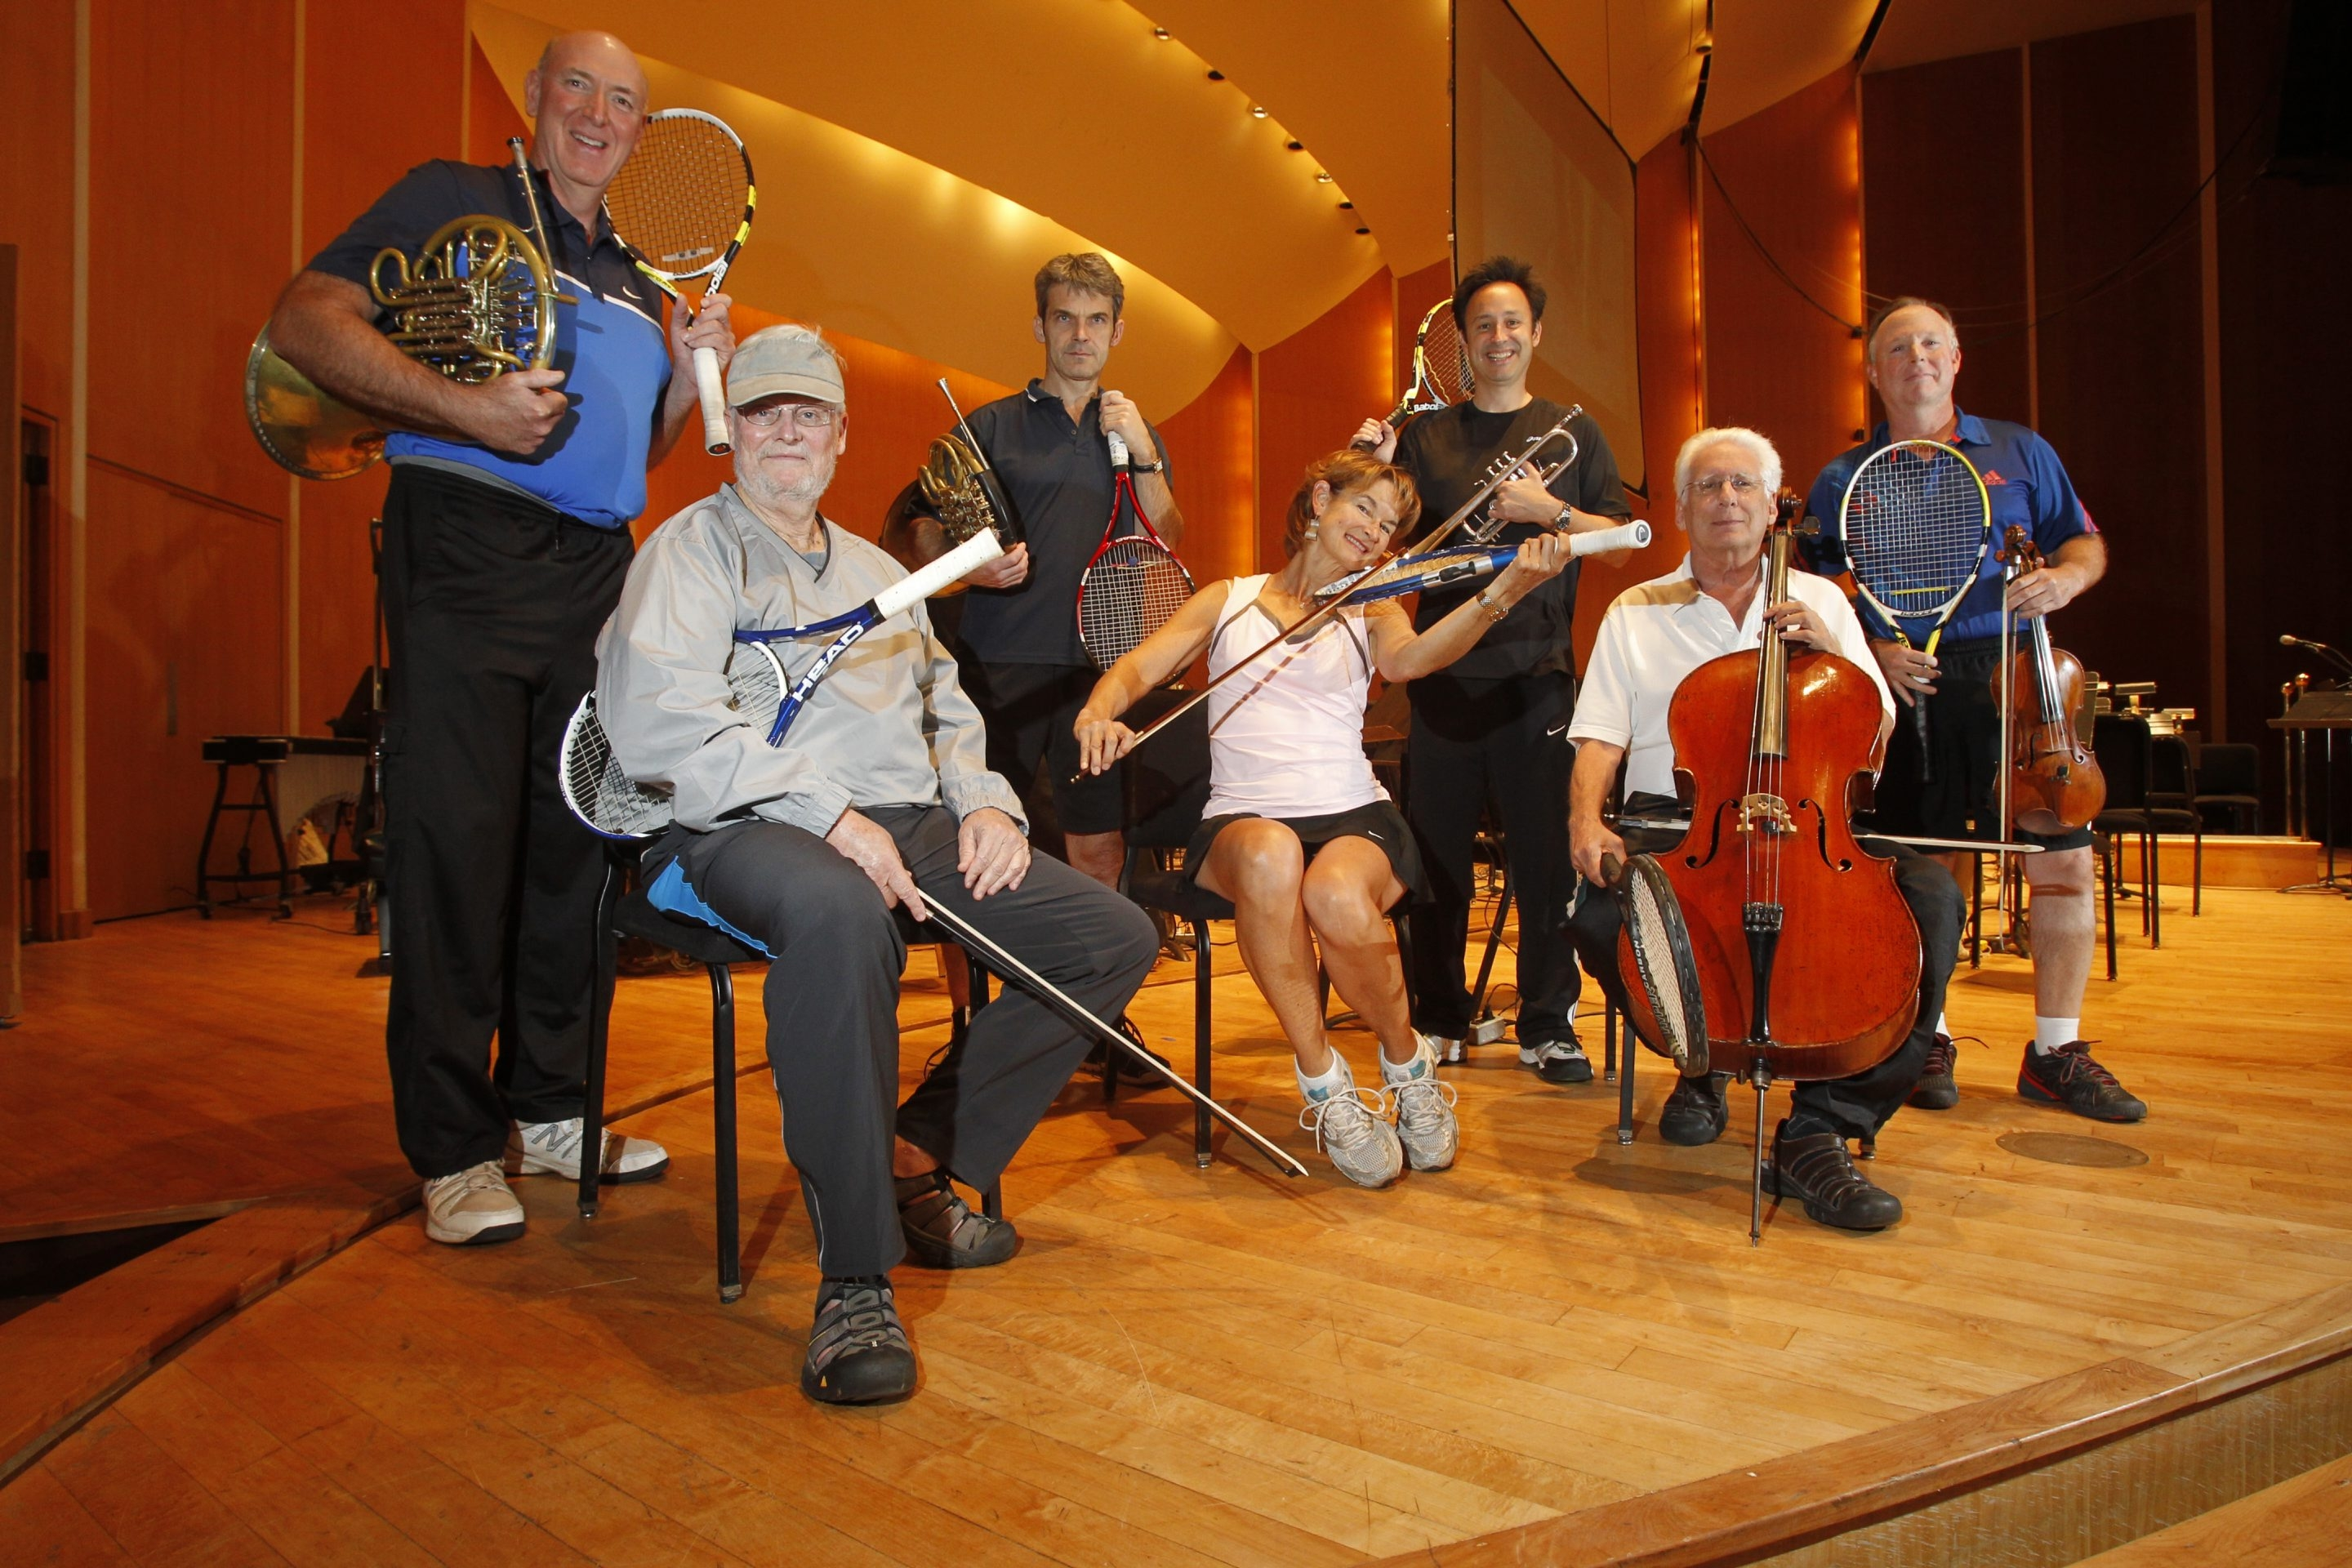 Buffalo Philharmonic Orchestra members, (sitting) Jeff Jones, Diana Sachs, Monte Hoffman, (standing L-R) Jay Matthews, Jacek Muzyk, Alan Ross and Geoff Hardcastle pose with their instruments and tennis rackets. Not pictured: Phil Christner, Roman Mekinulov.